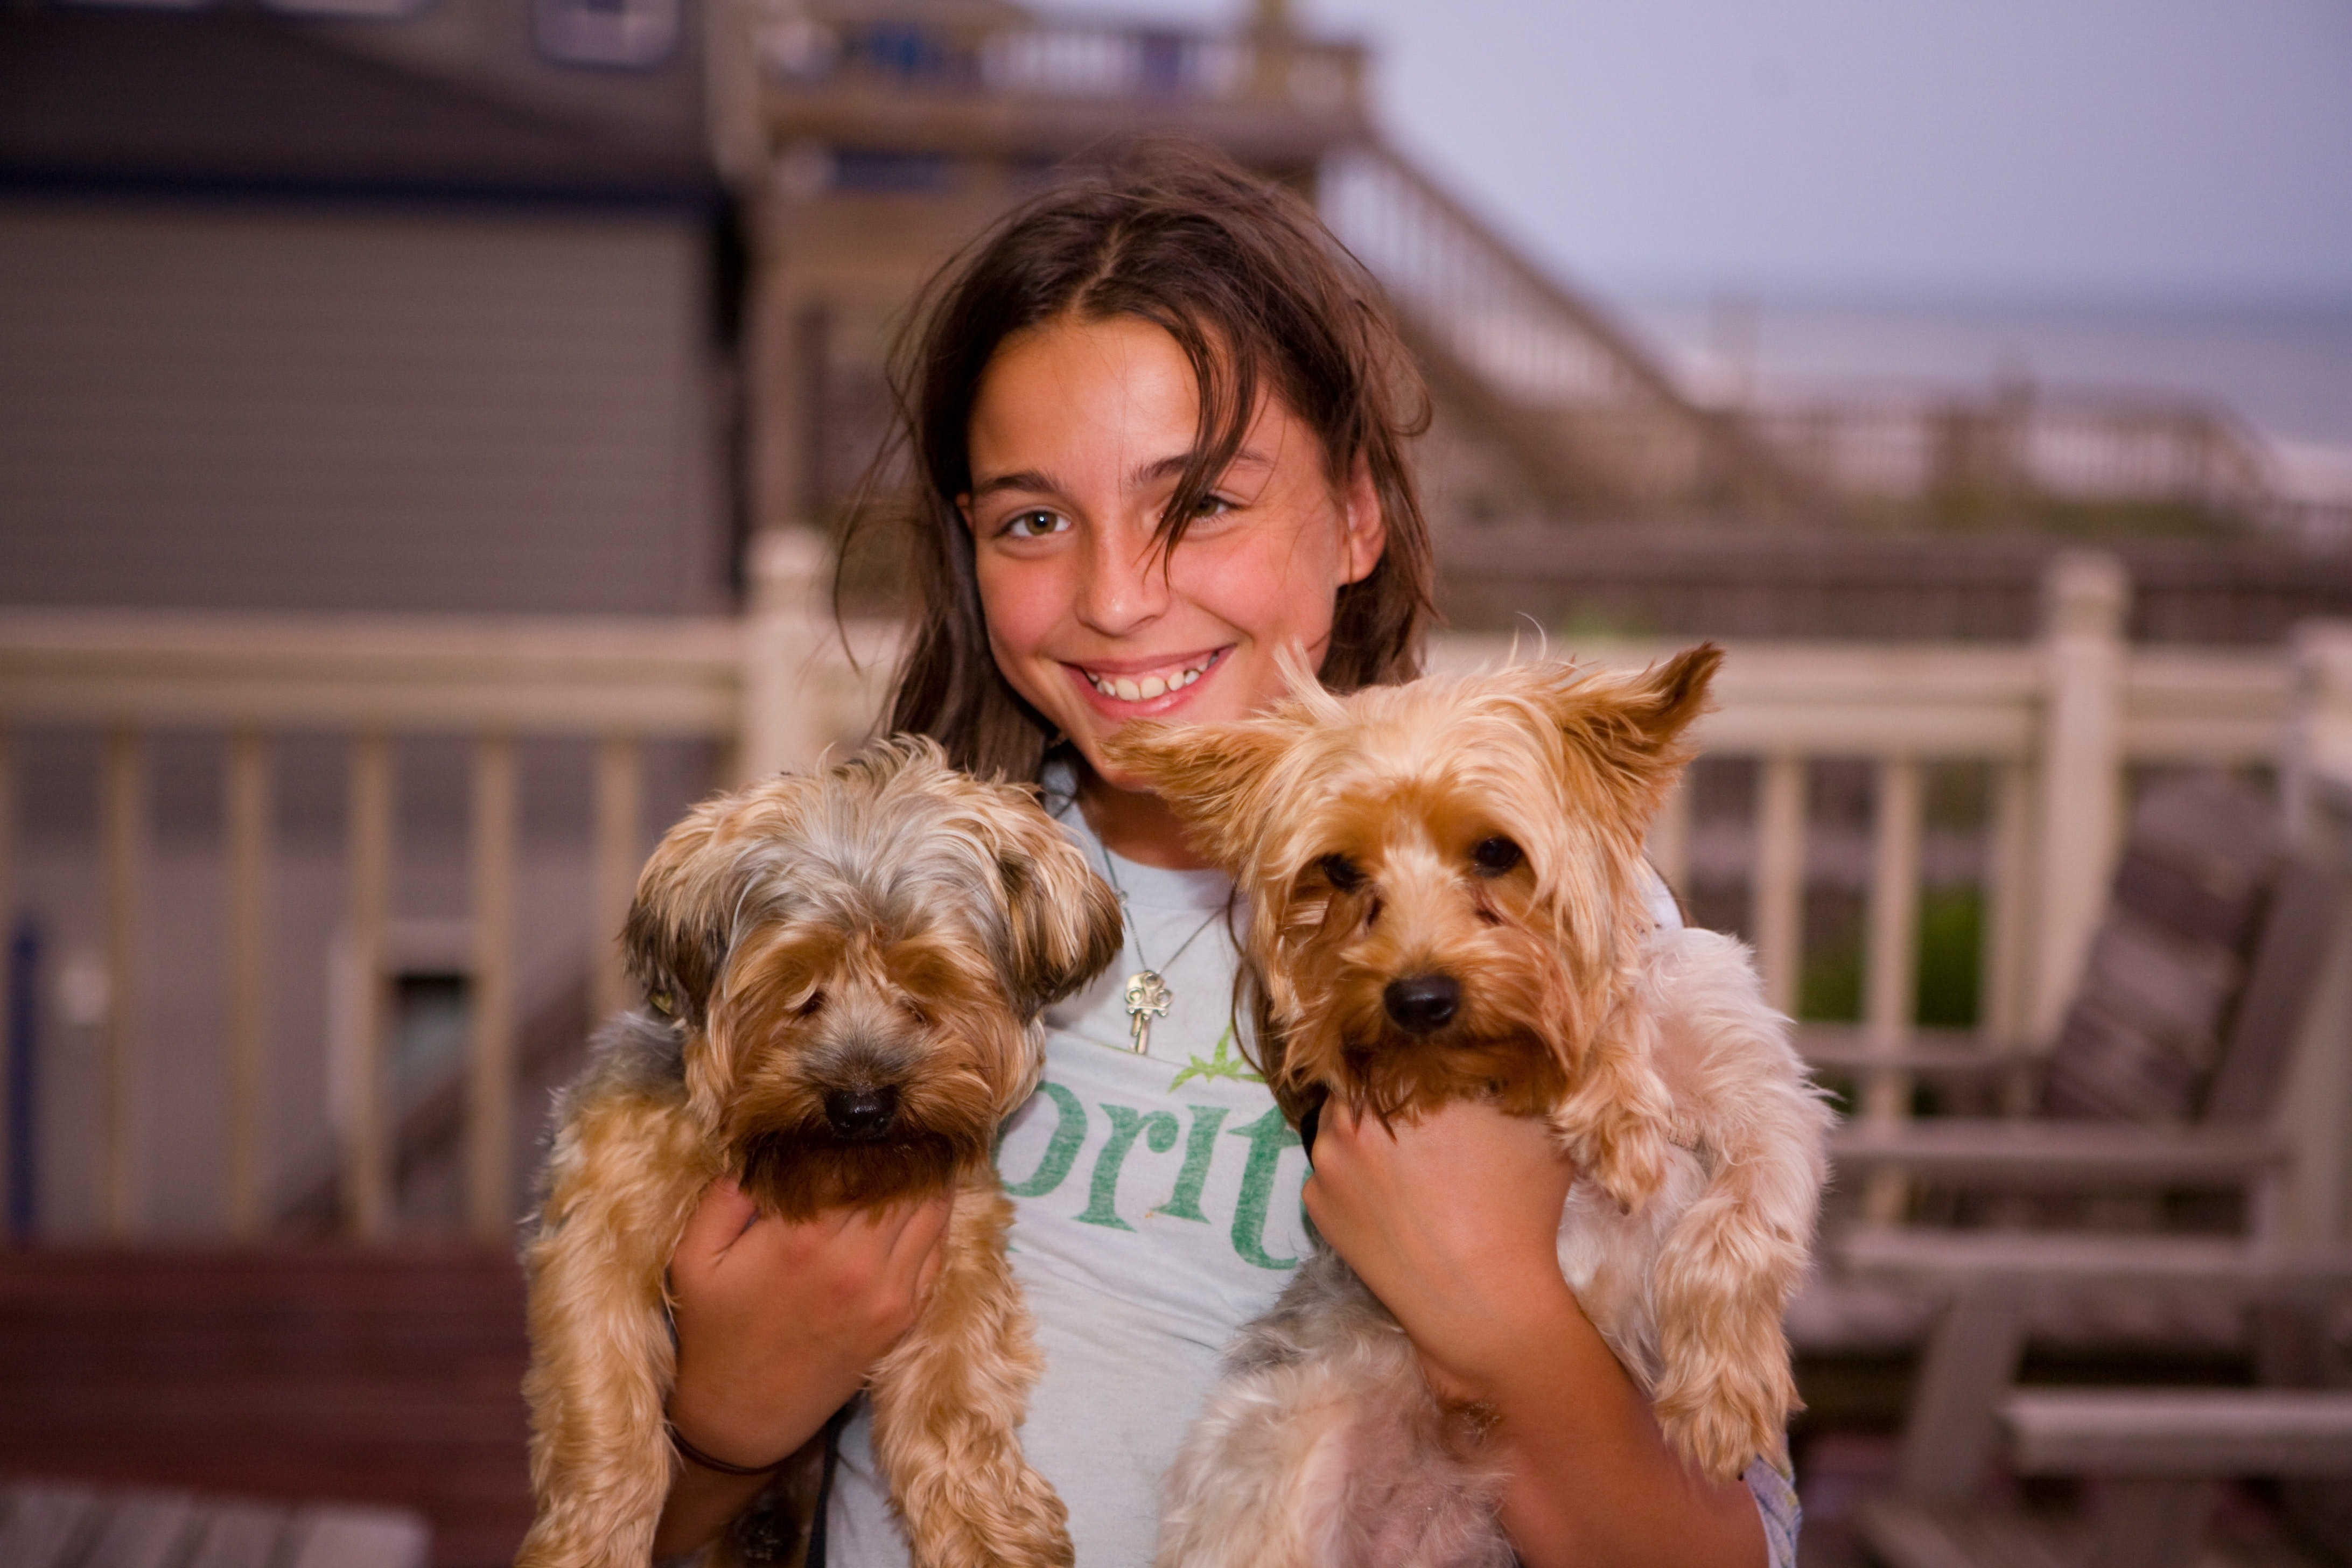 Girl Holding 2 Long Coat Small Dogs Smiling, Adorable, Animals, Canine, Cute, HQ Photo